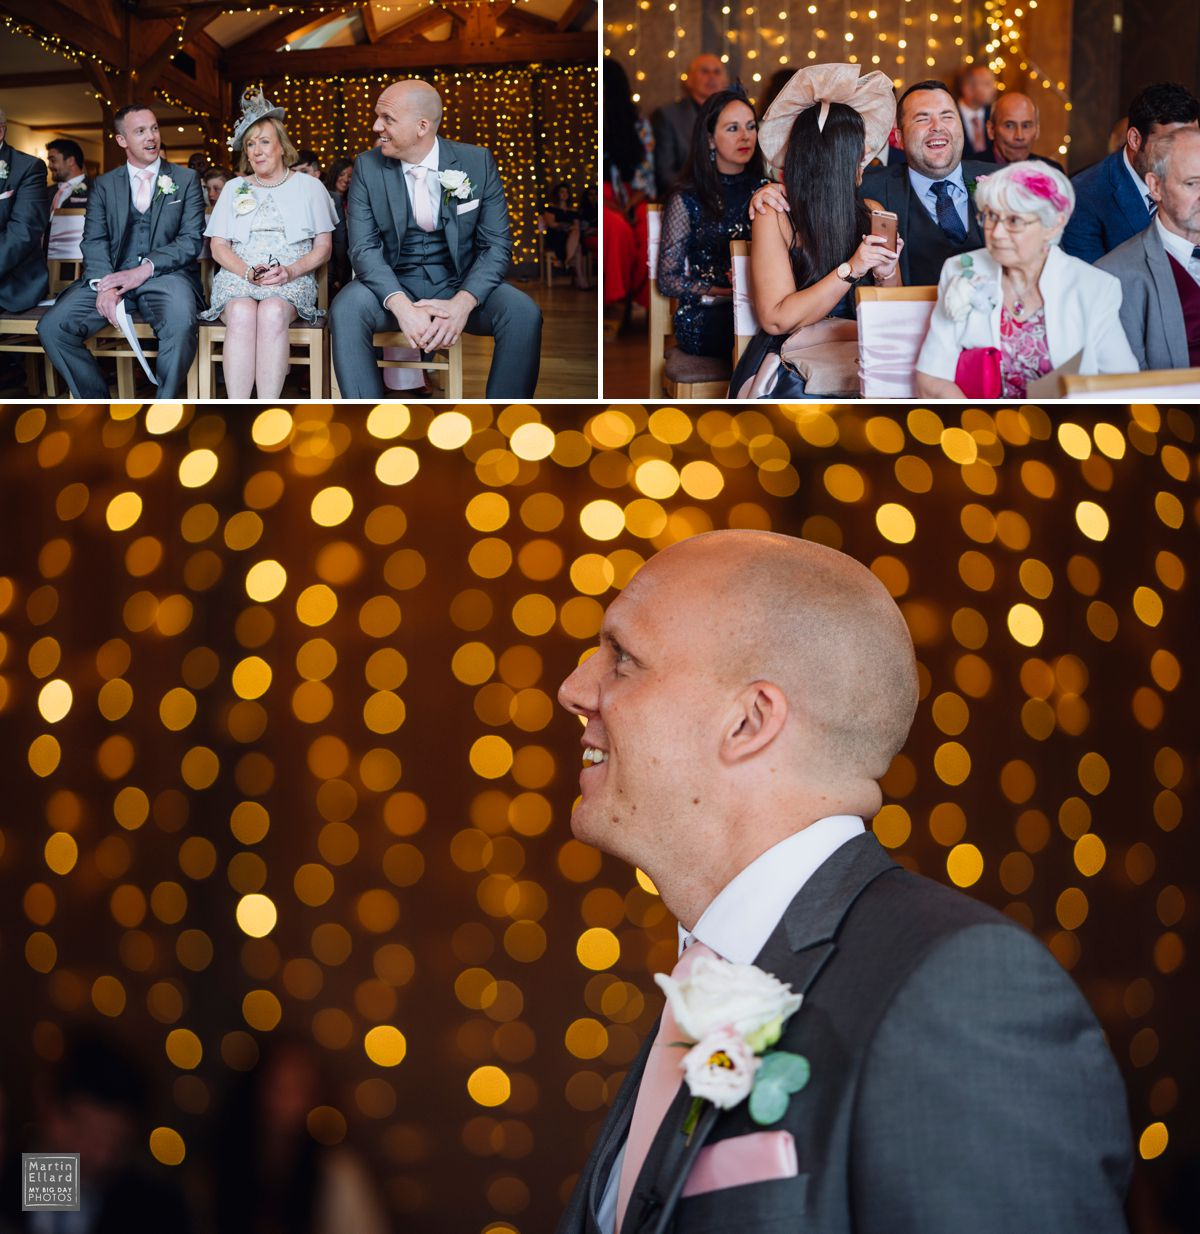 The King Arthur Hotel Swansea wedding photographer